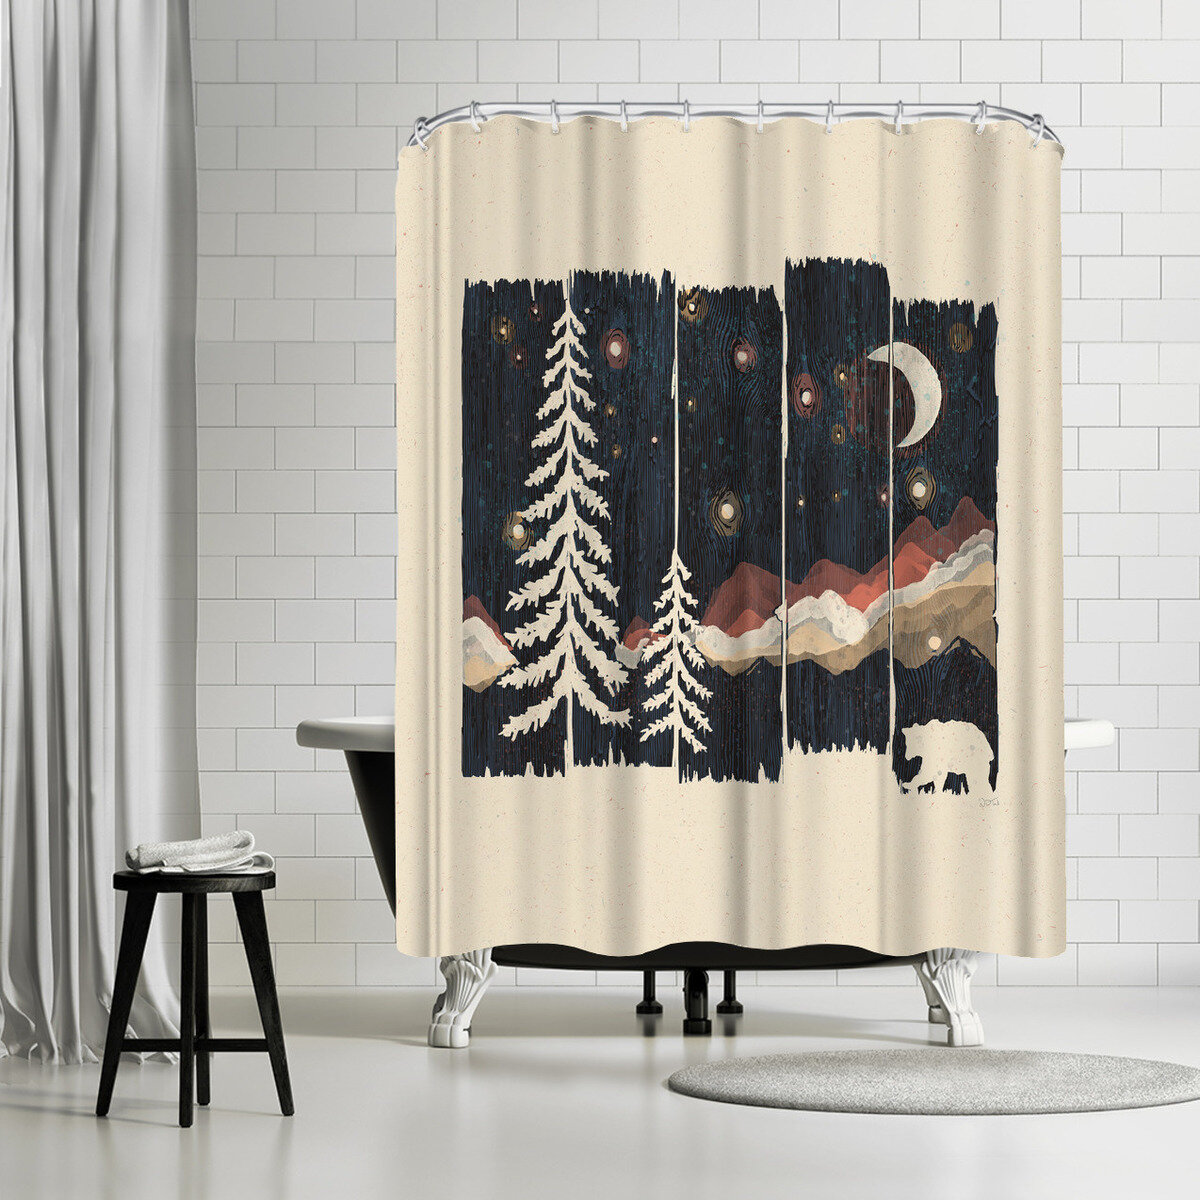 East Urban Home Ndtank Starry Night In The Mountains Single Shower Curtain Wayfair